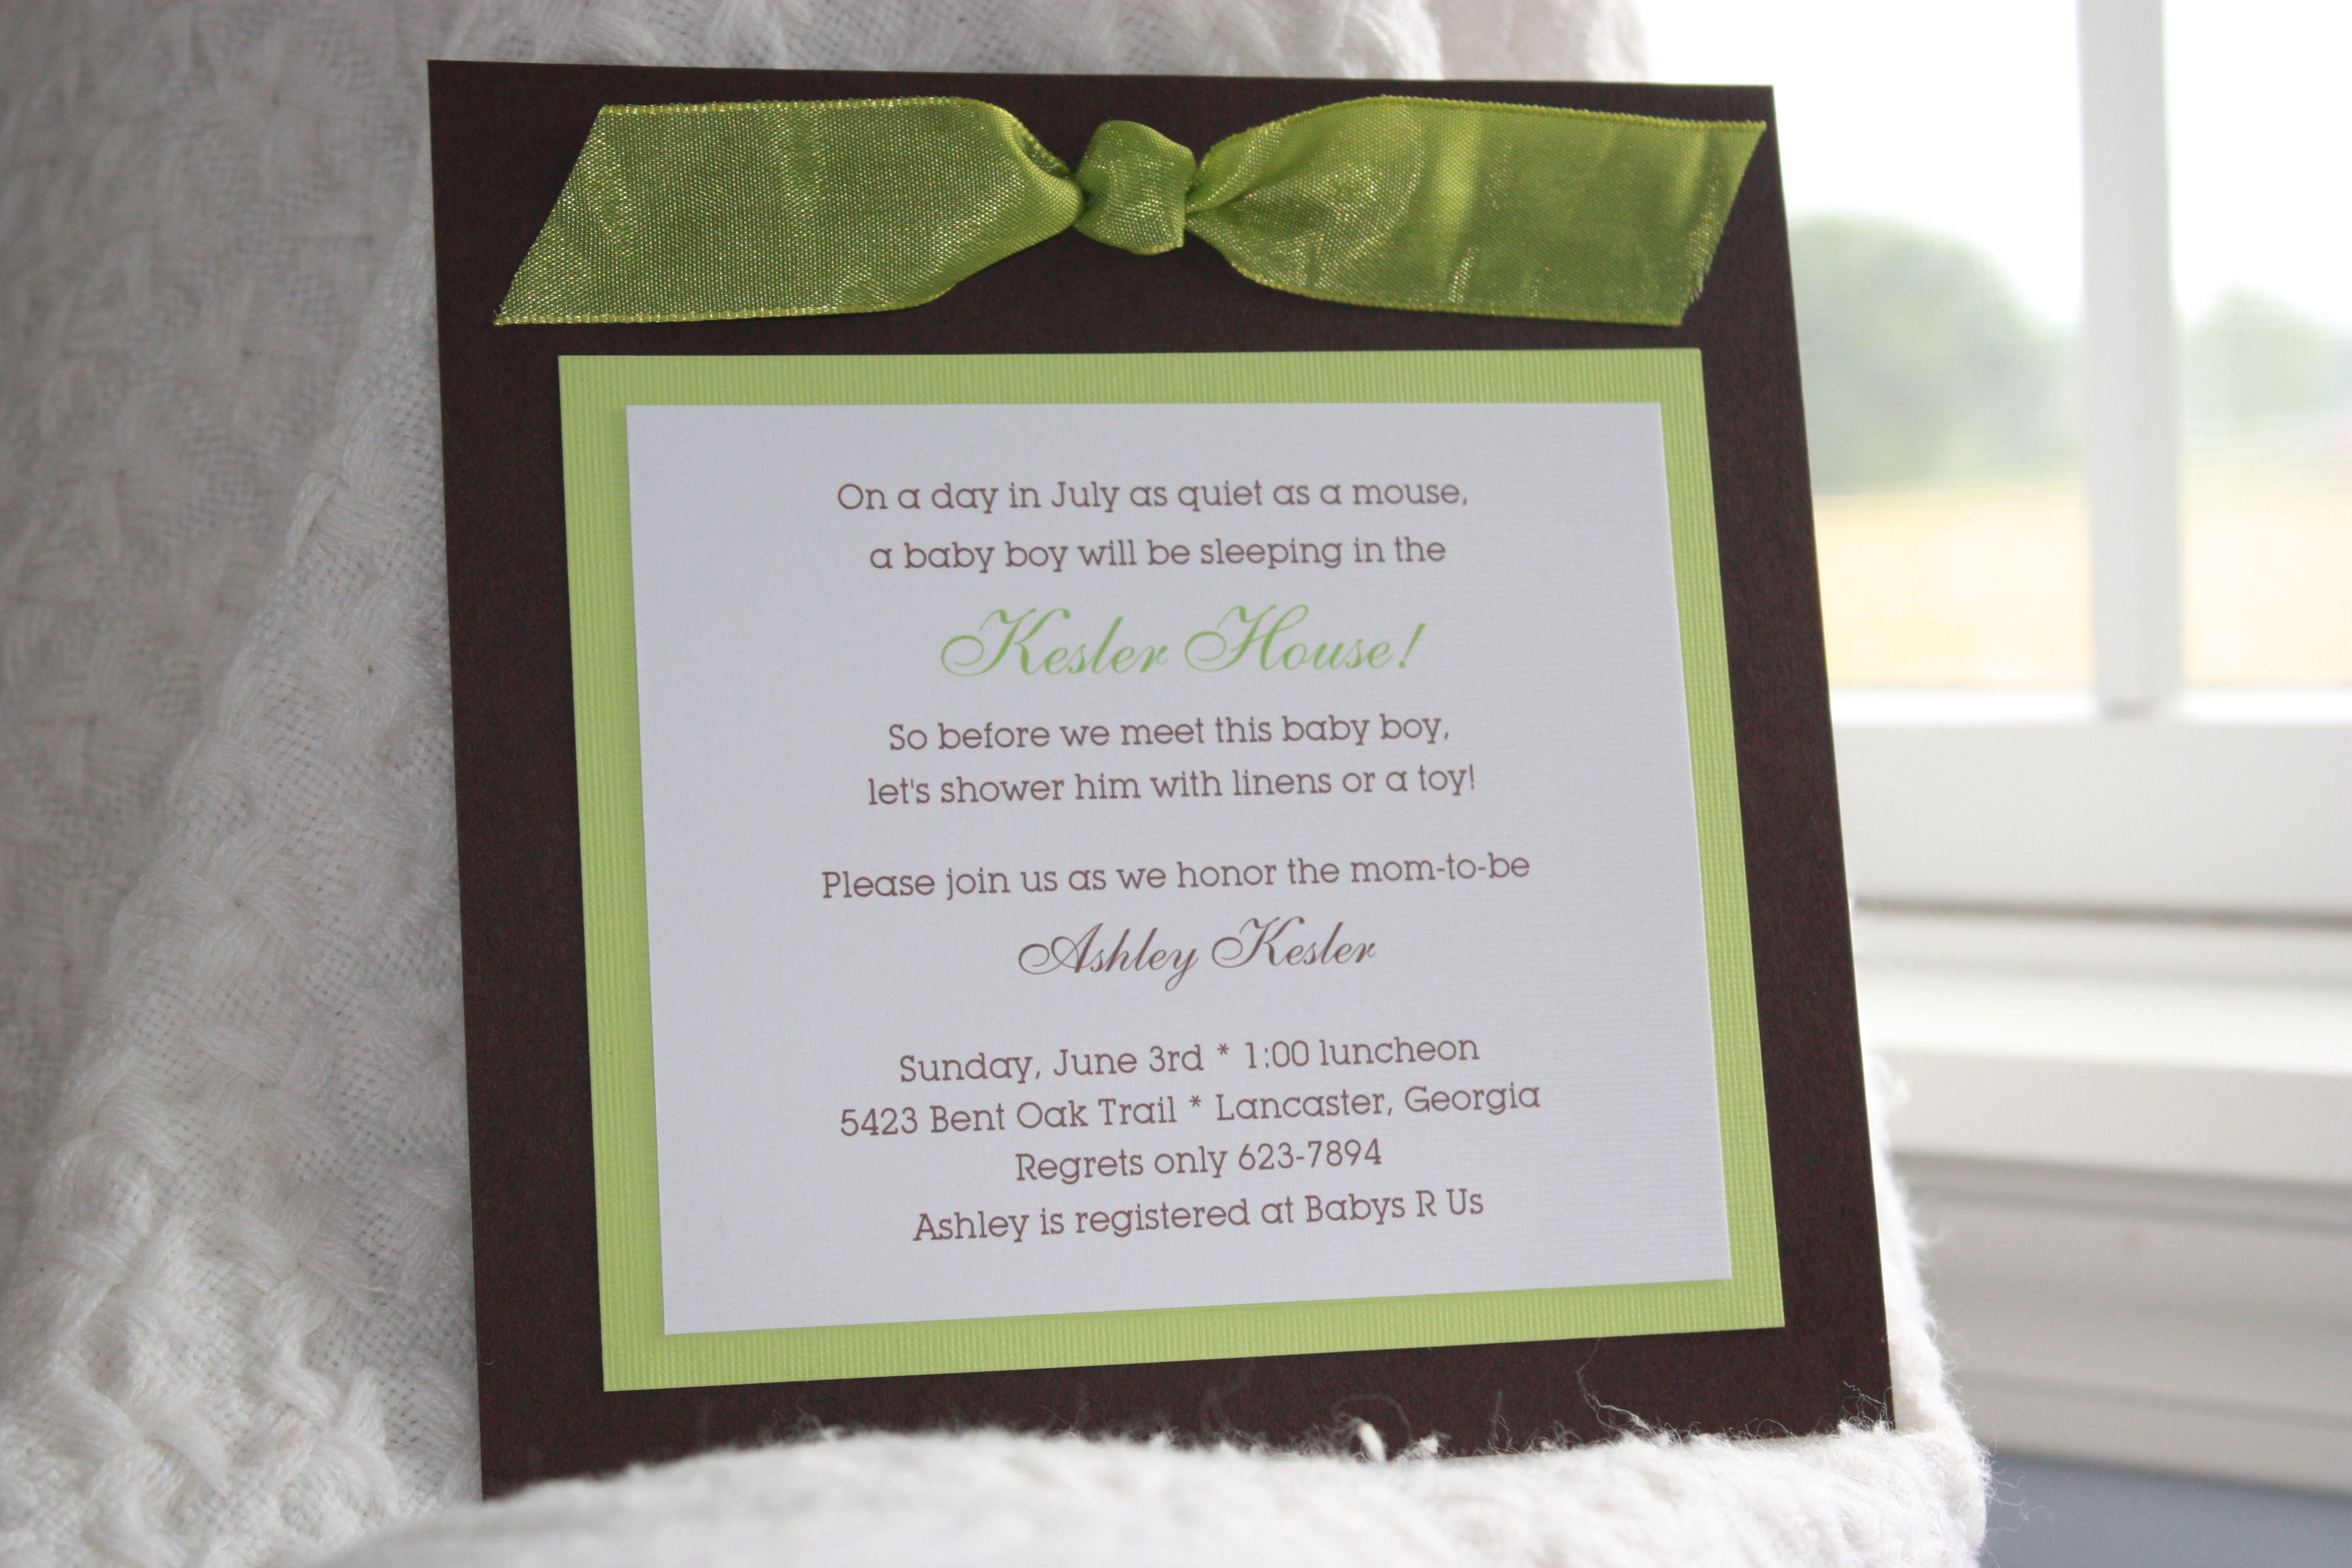 Diy bridal shower invitations homemade invitations baby shower6 diy bridal shower invitations homemade invitations baby shower6 boy solutioingenieria Choice Image